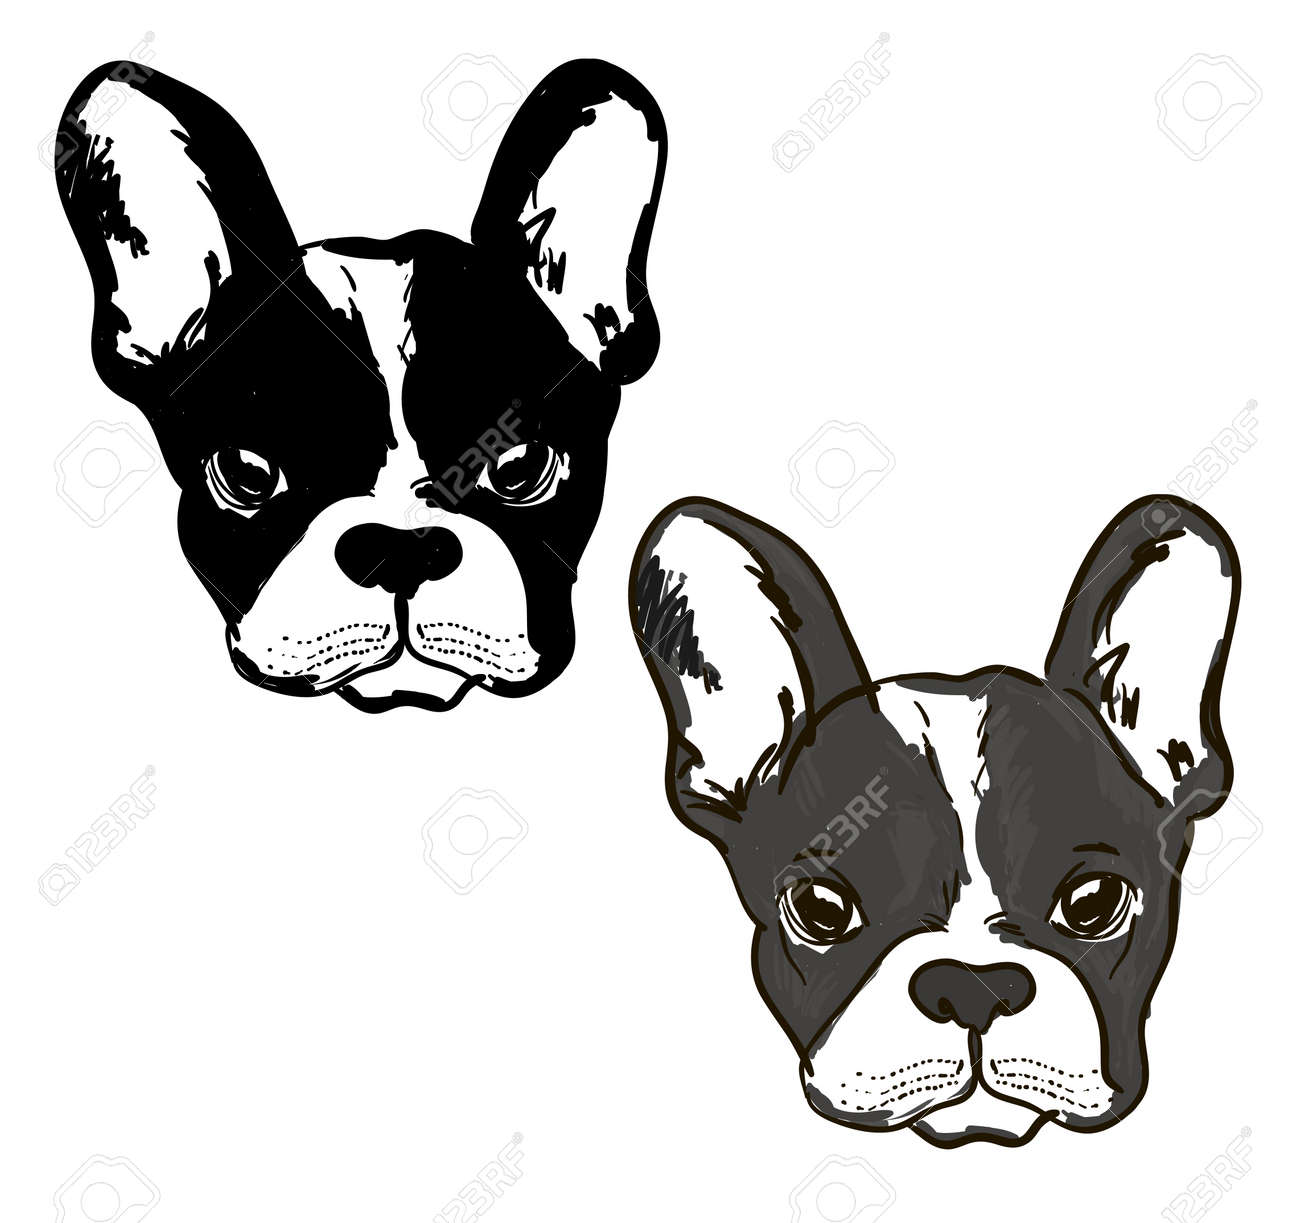 Cute dog Muzzle of frenchie buldog with bunny ears in black & white colors illustration. - 154727954